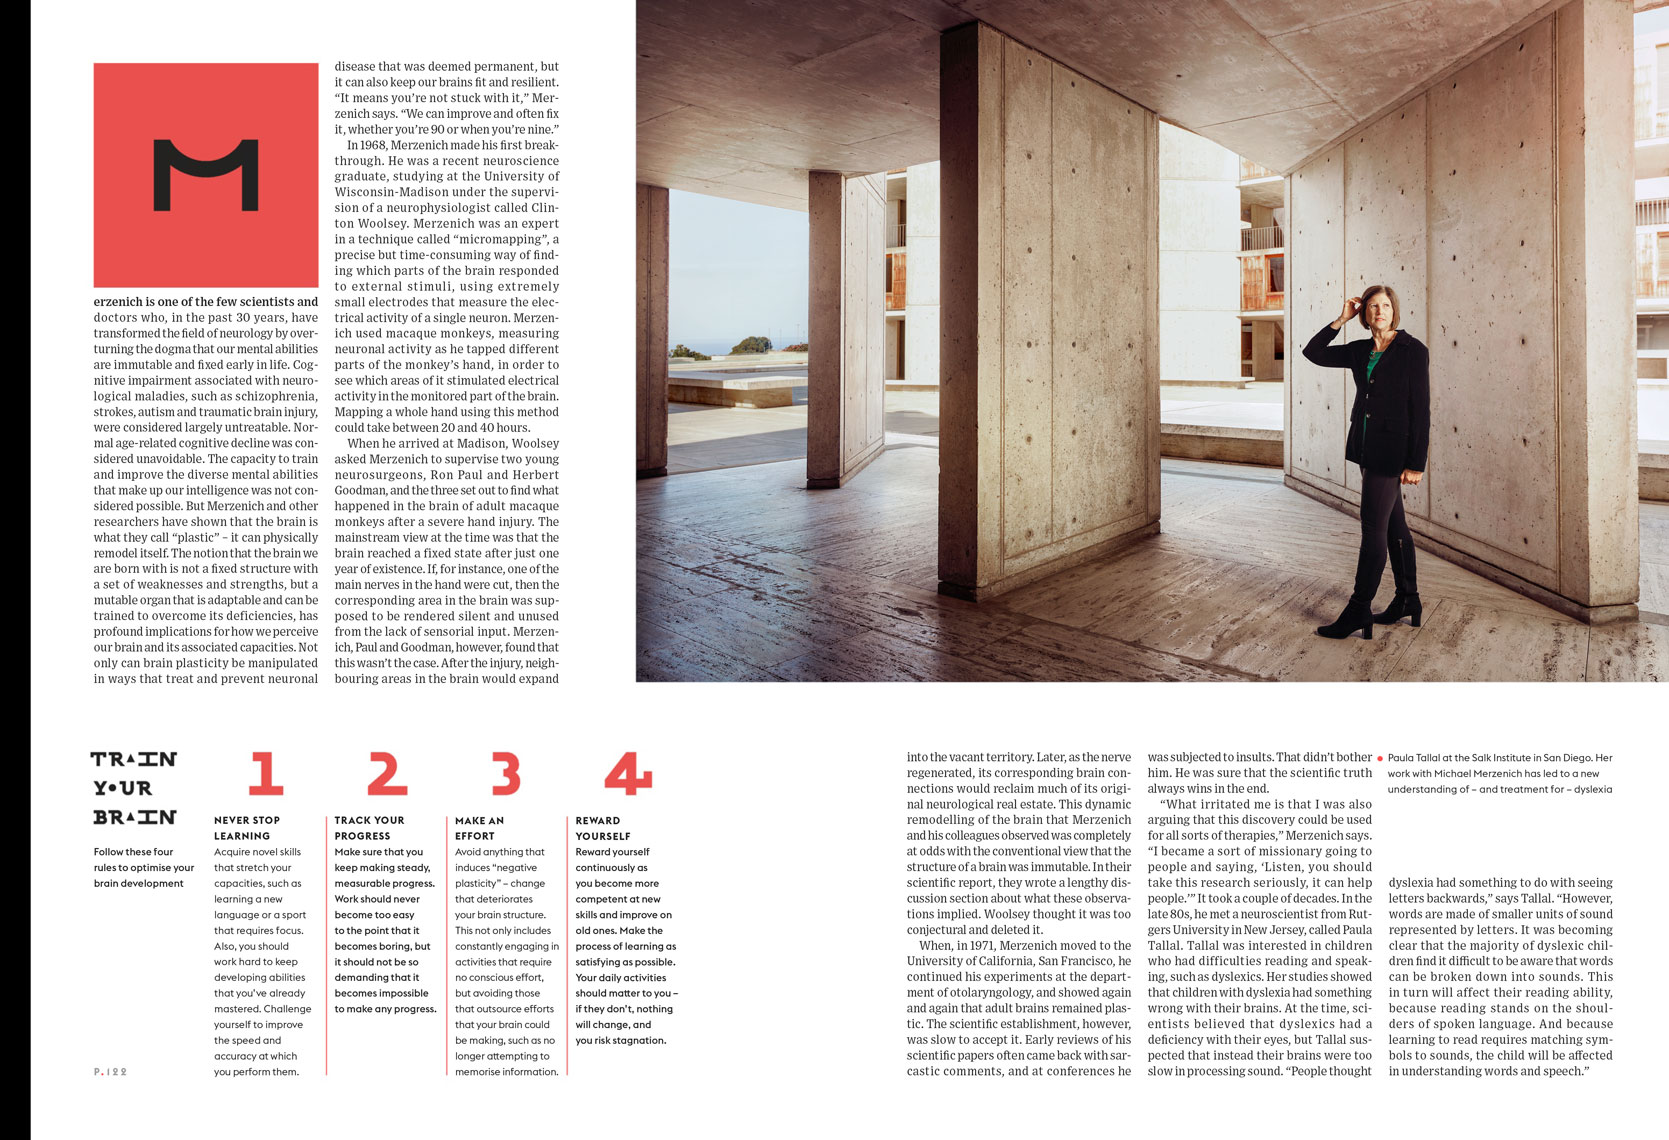 Paula Tallal at the Salk Institute for Wired UK Spread May 2014 ...